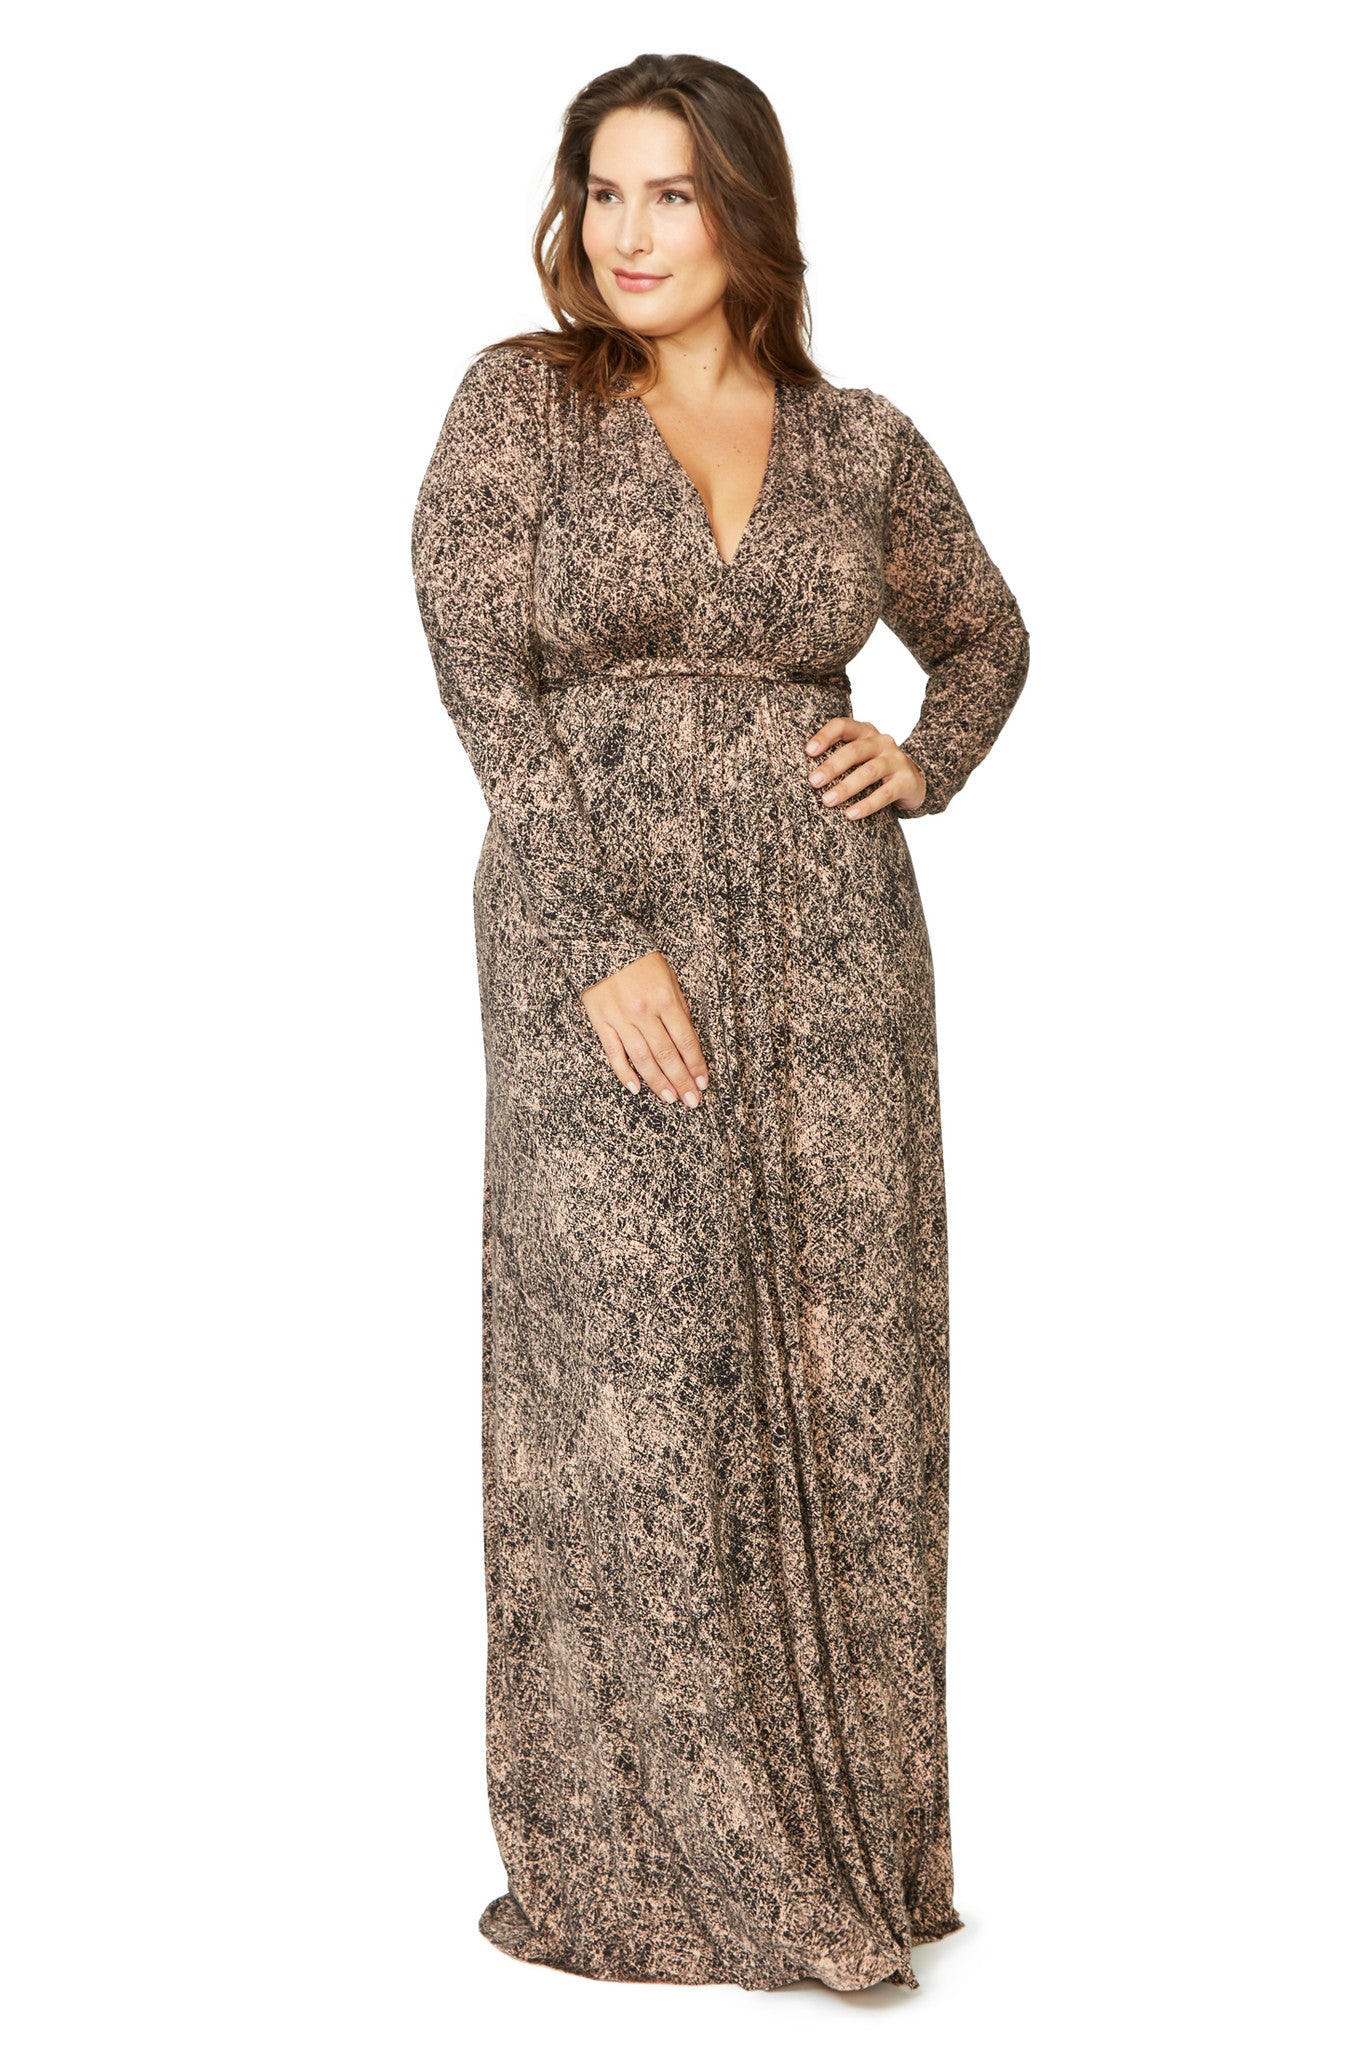 Long Sleeve Full Length Caftan Dress WL - Black Kinetic